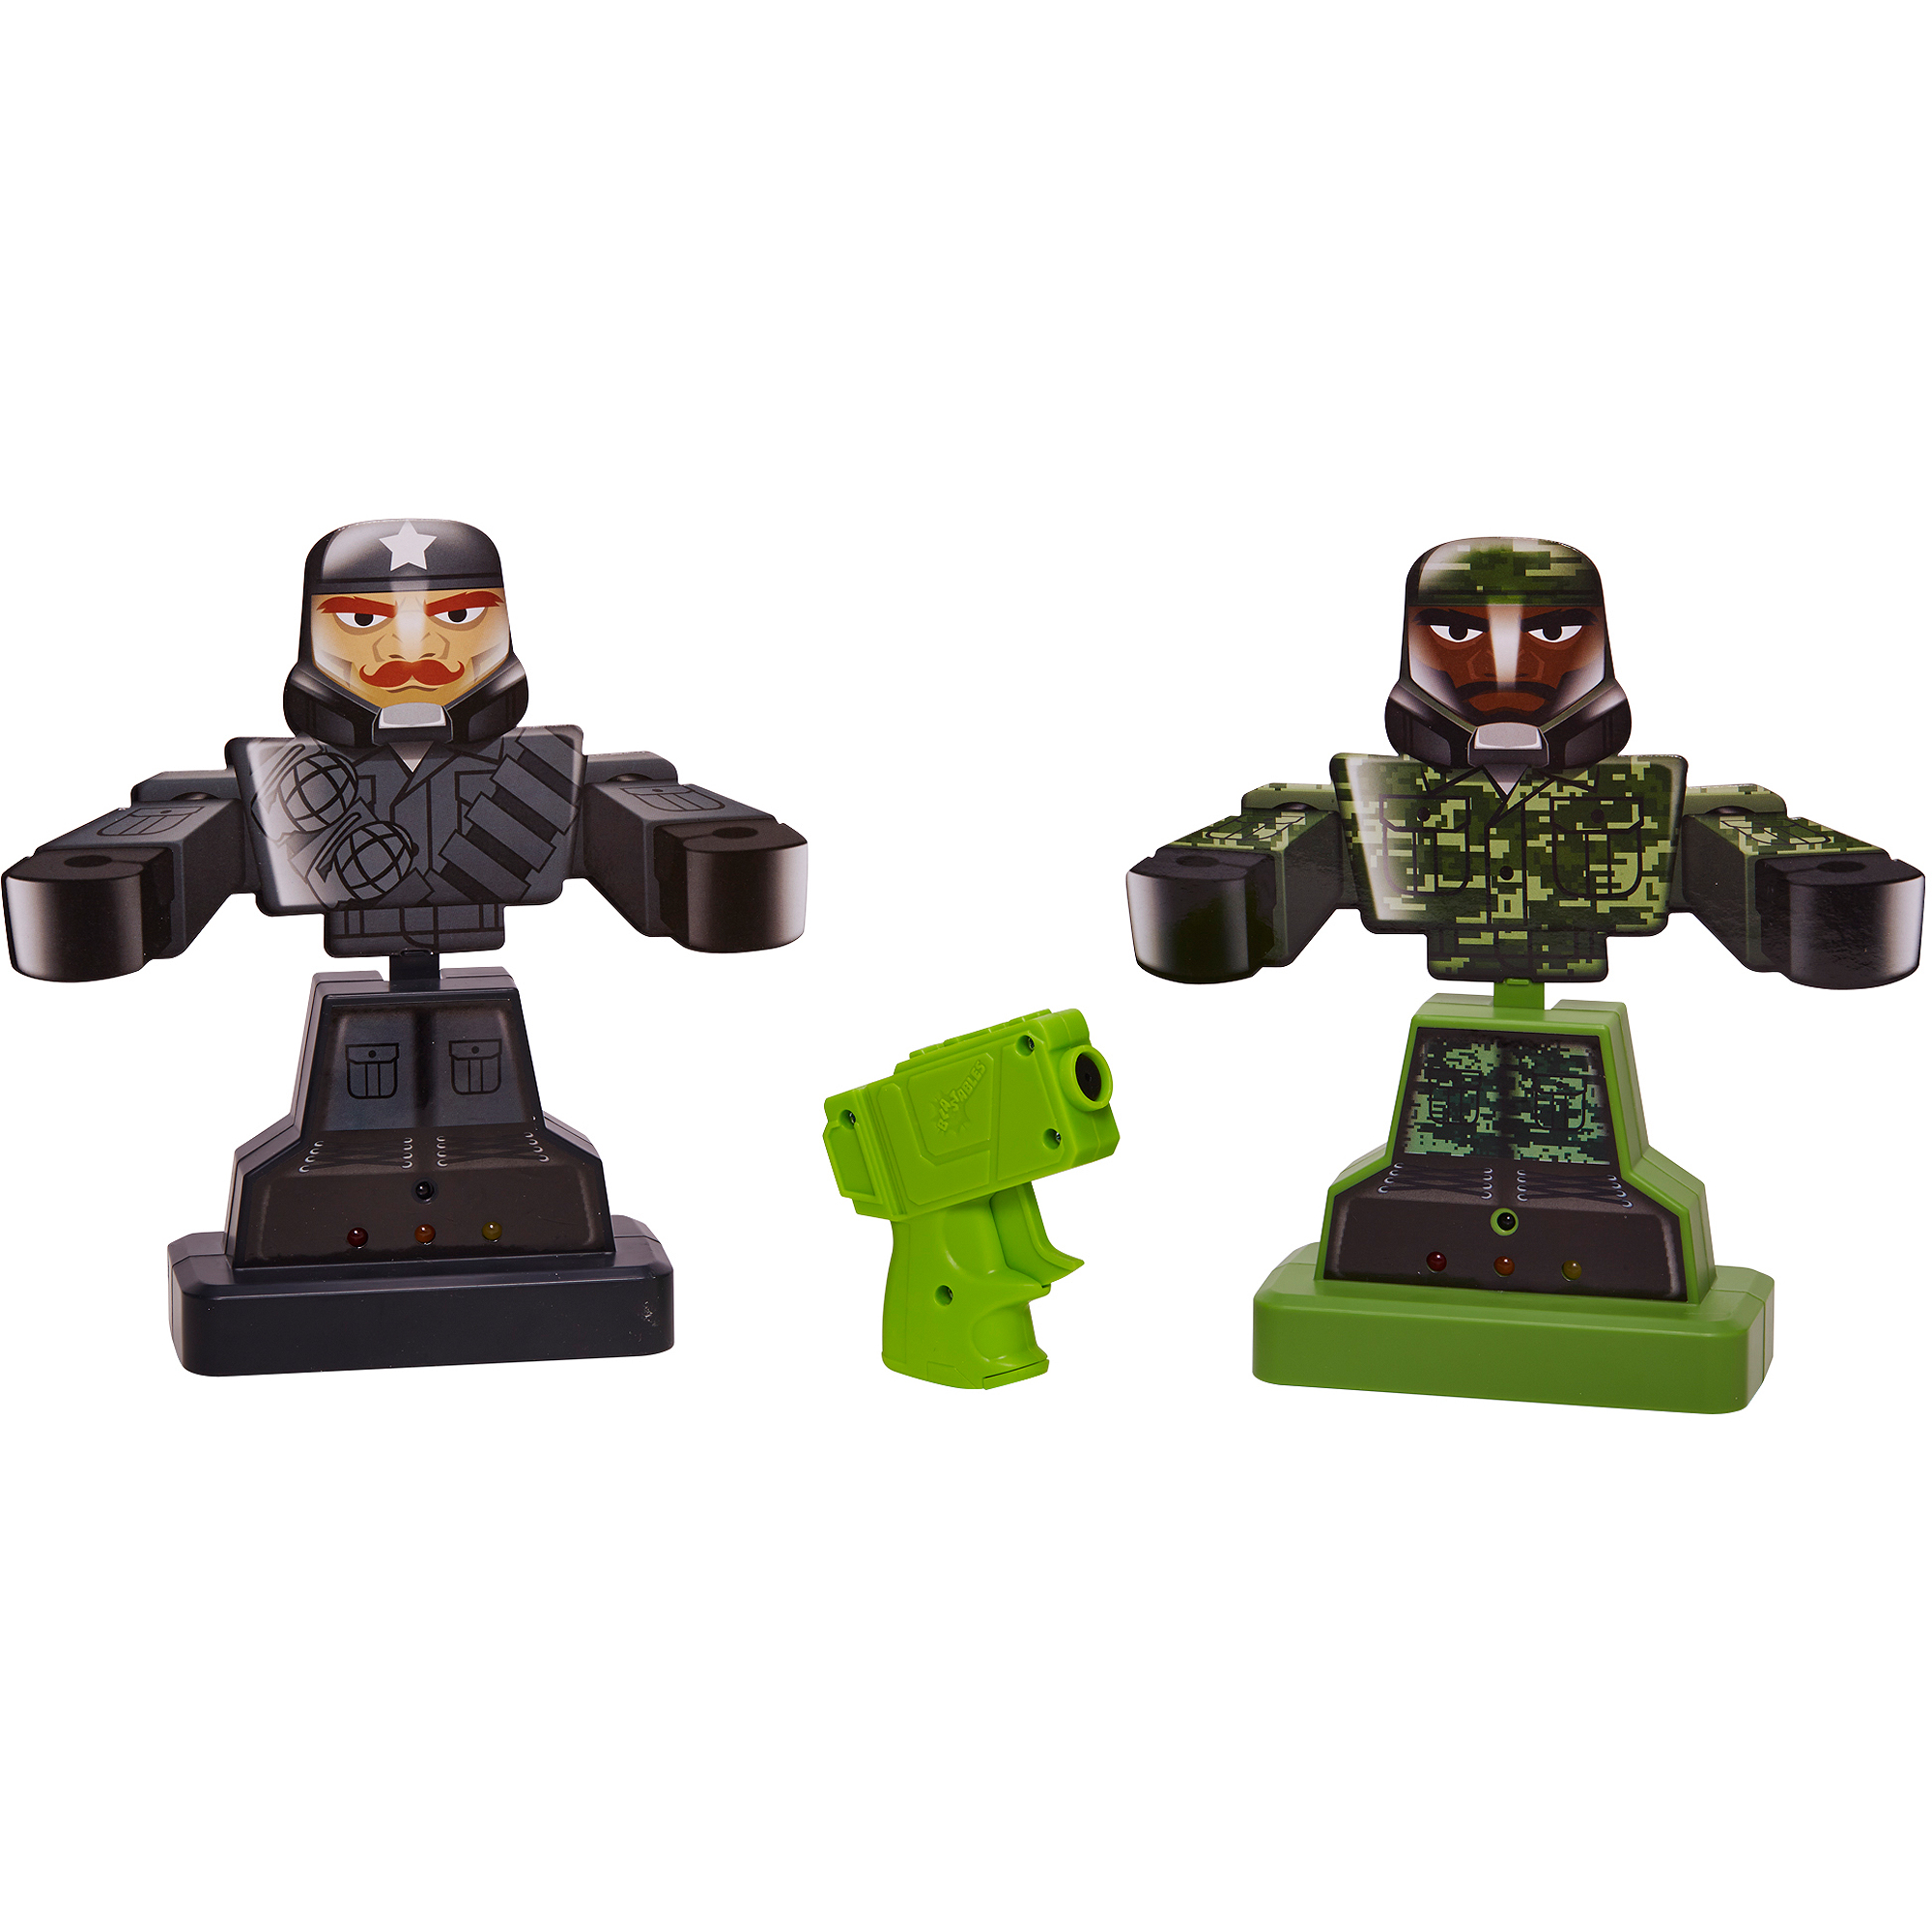 Blastables Rebounding Target Green and Black Military with Green Blaster